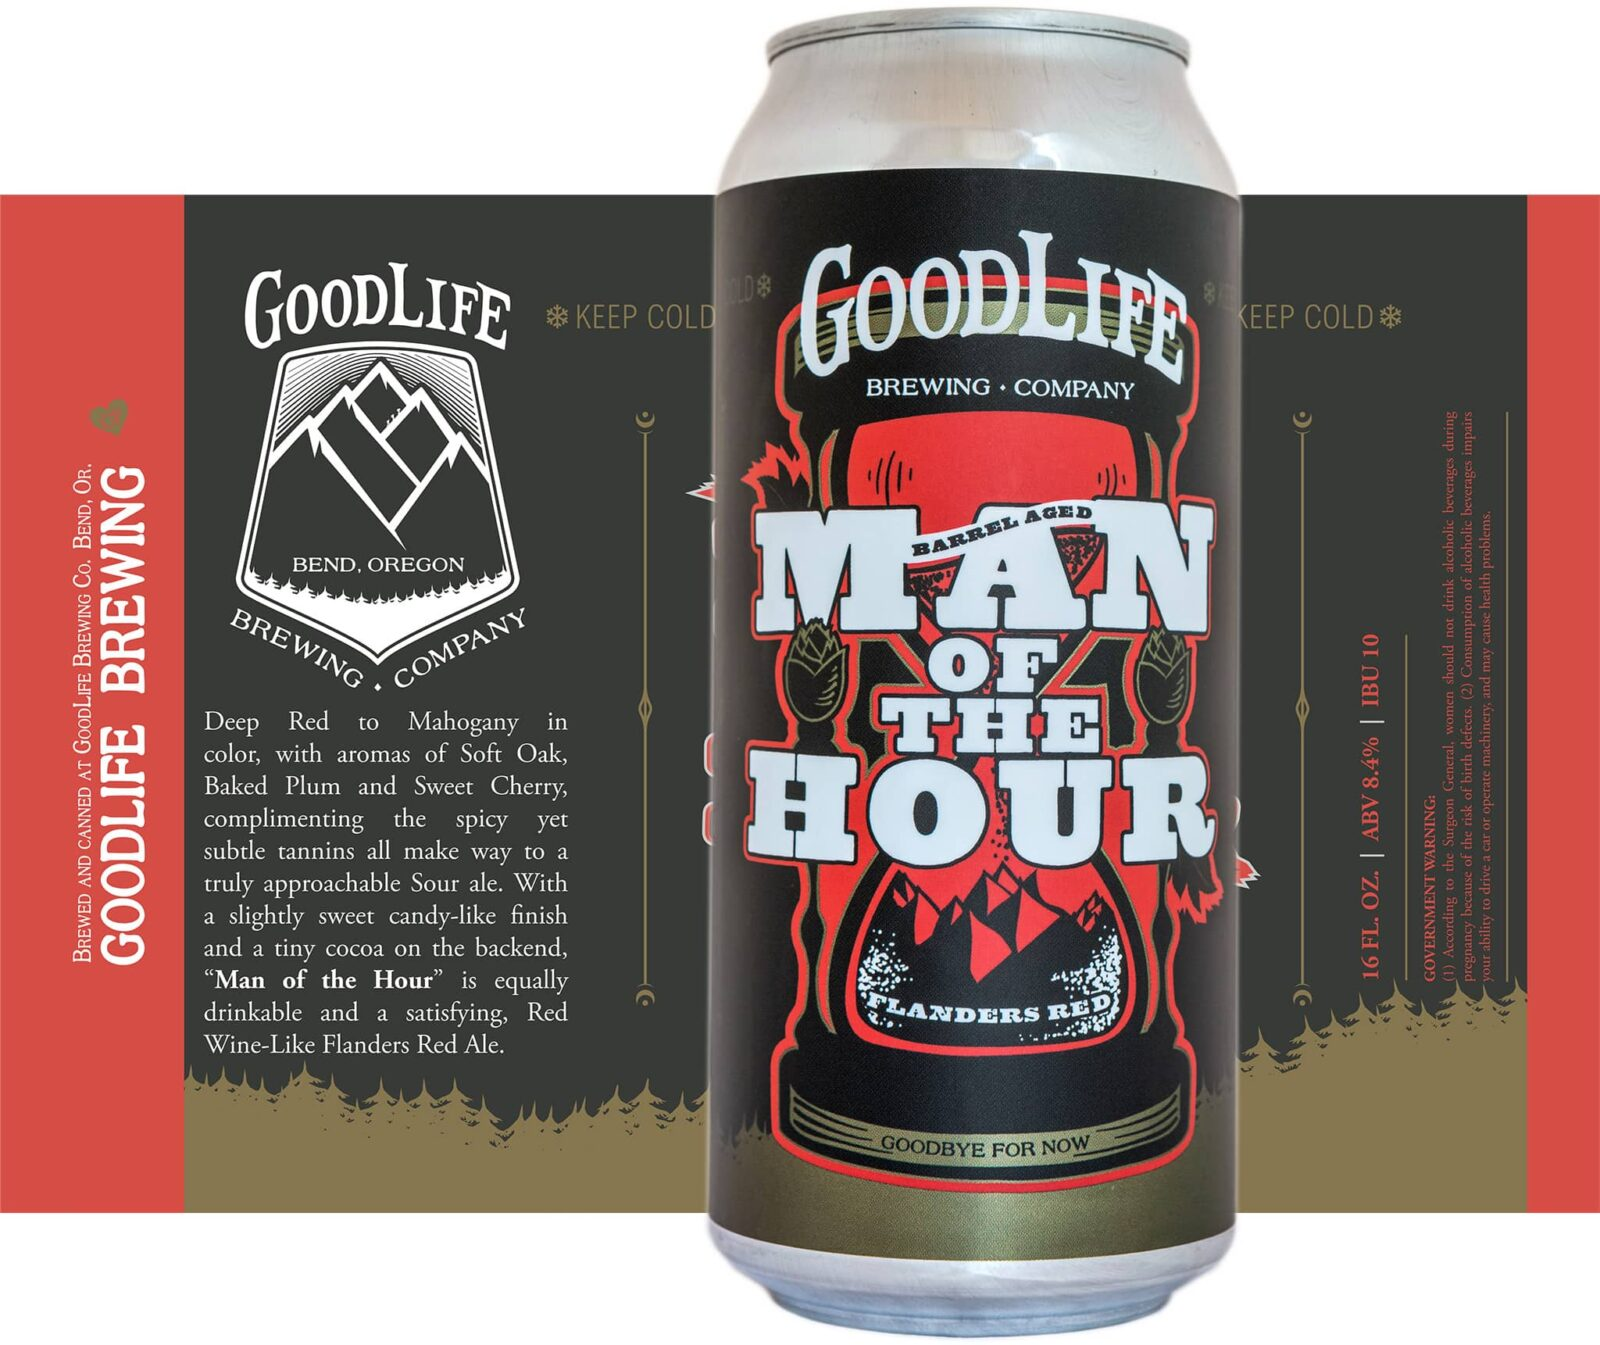 Crowerks designed the can artwork for GoodLife Brewing's